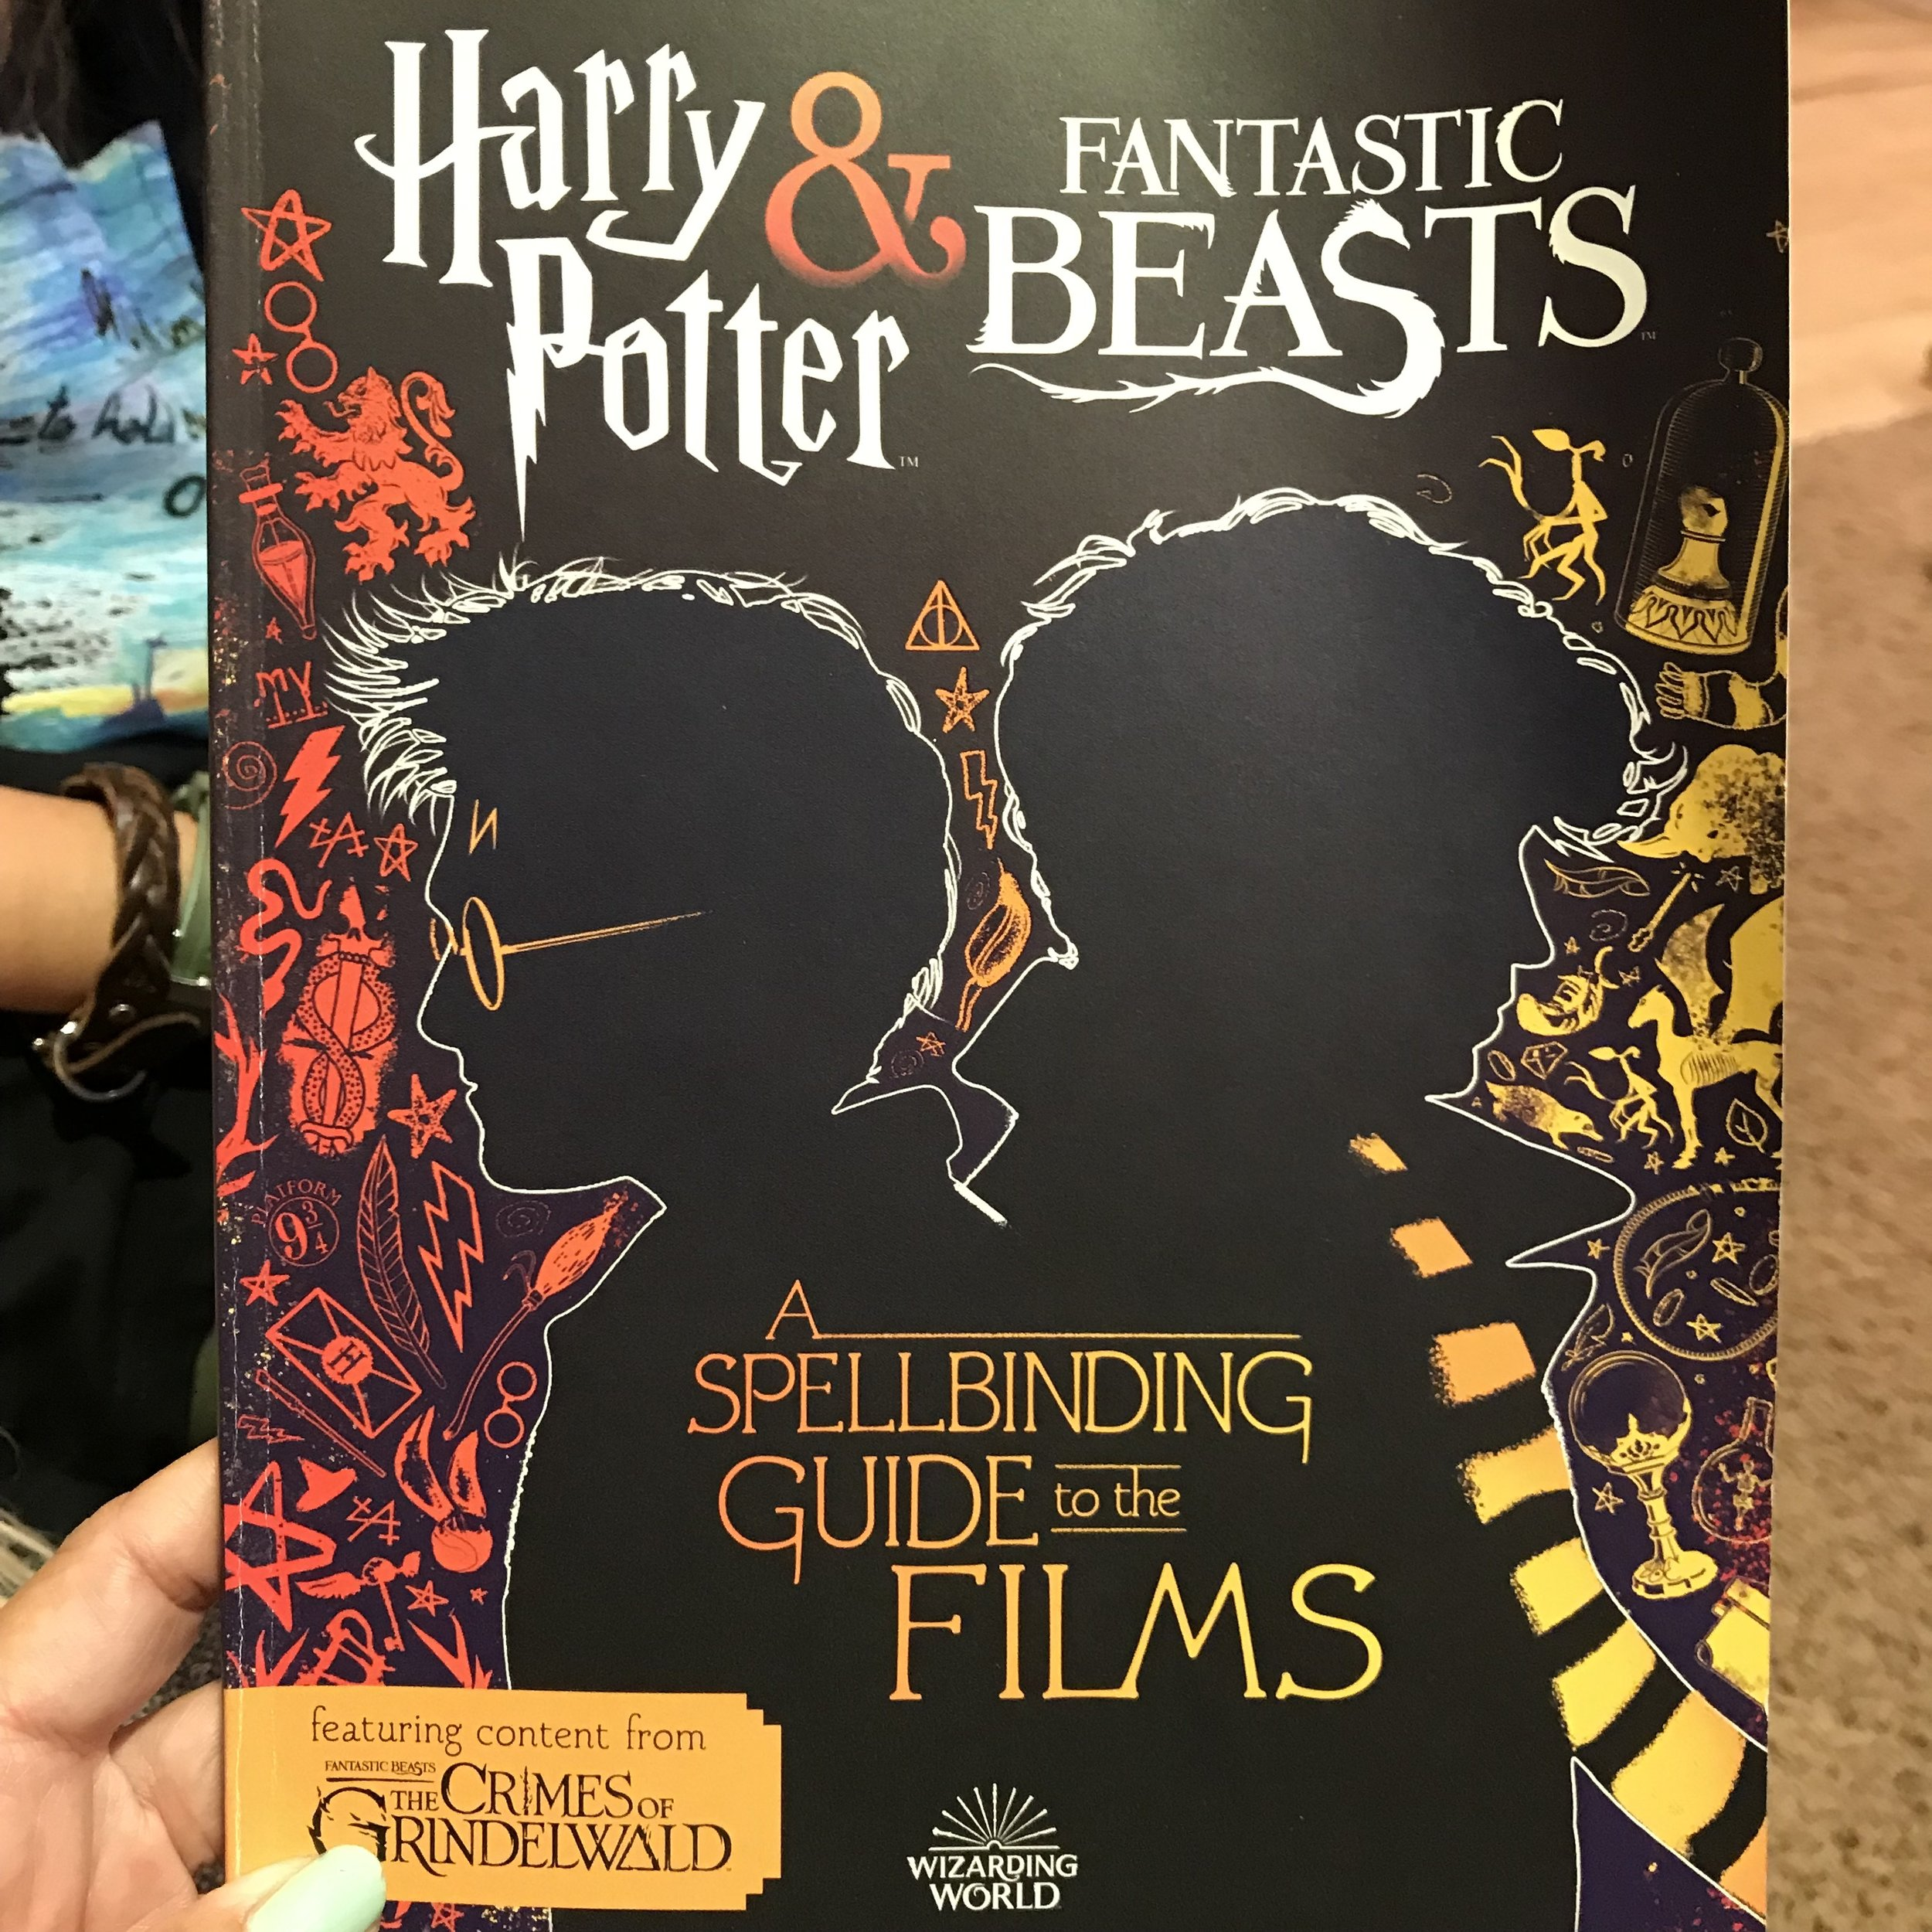 HP and Fantastic Beasts film guide Dr bookworm.jpg